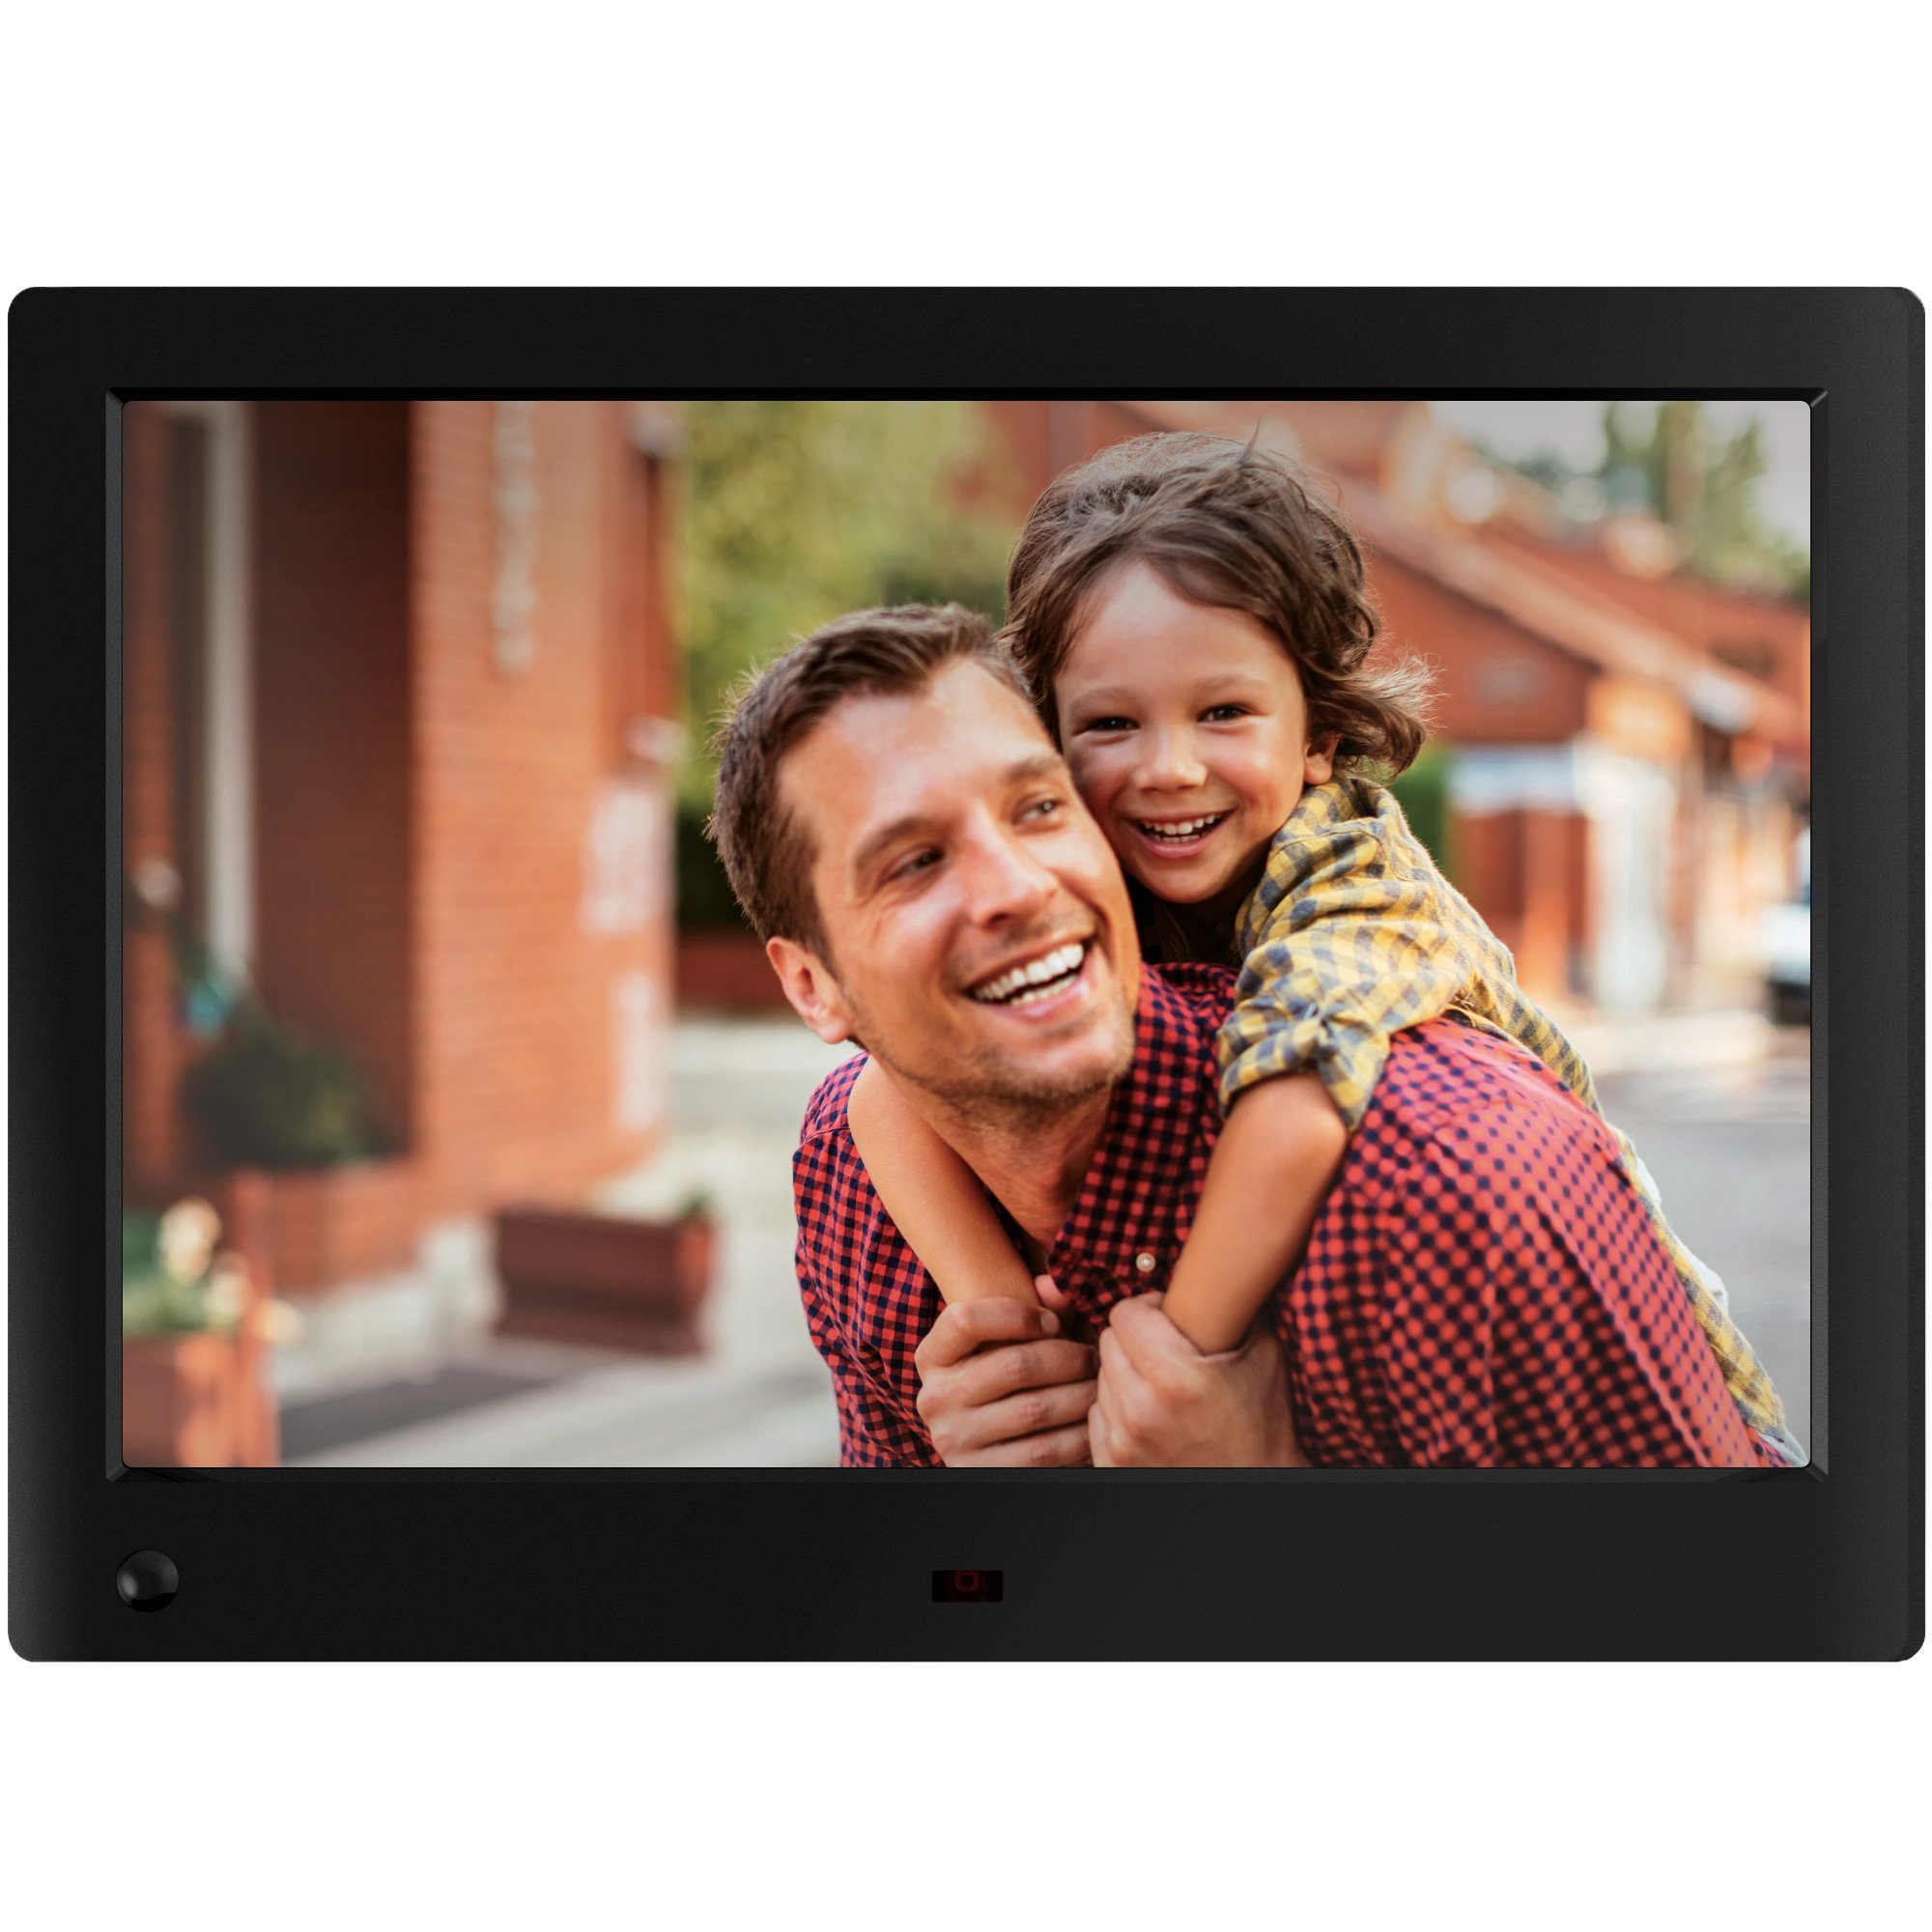 NIX Advance - 10 inch Widescreen Digital Photo & HD Video (720p) Frame, With Motion sensor, 8GB USB included by NIX